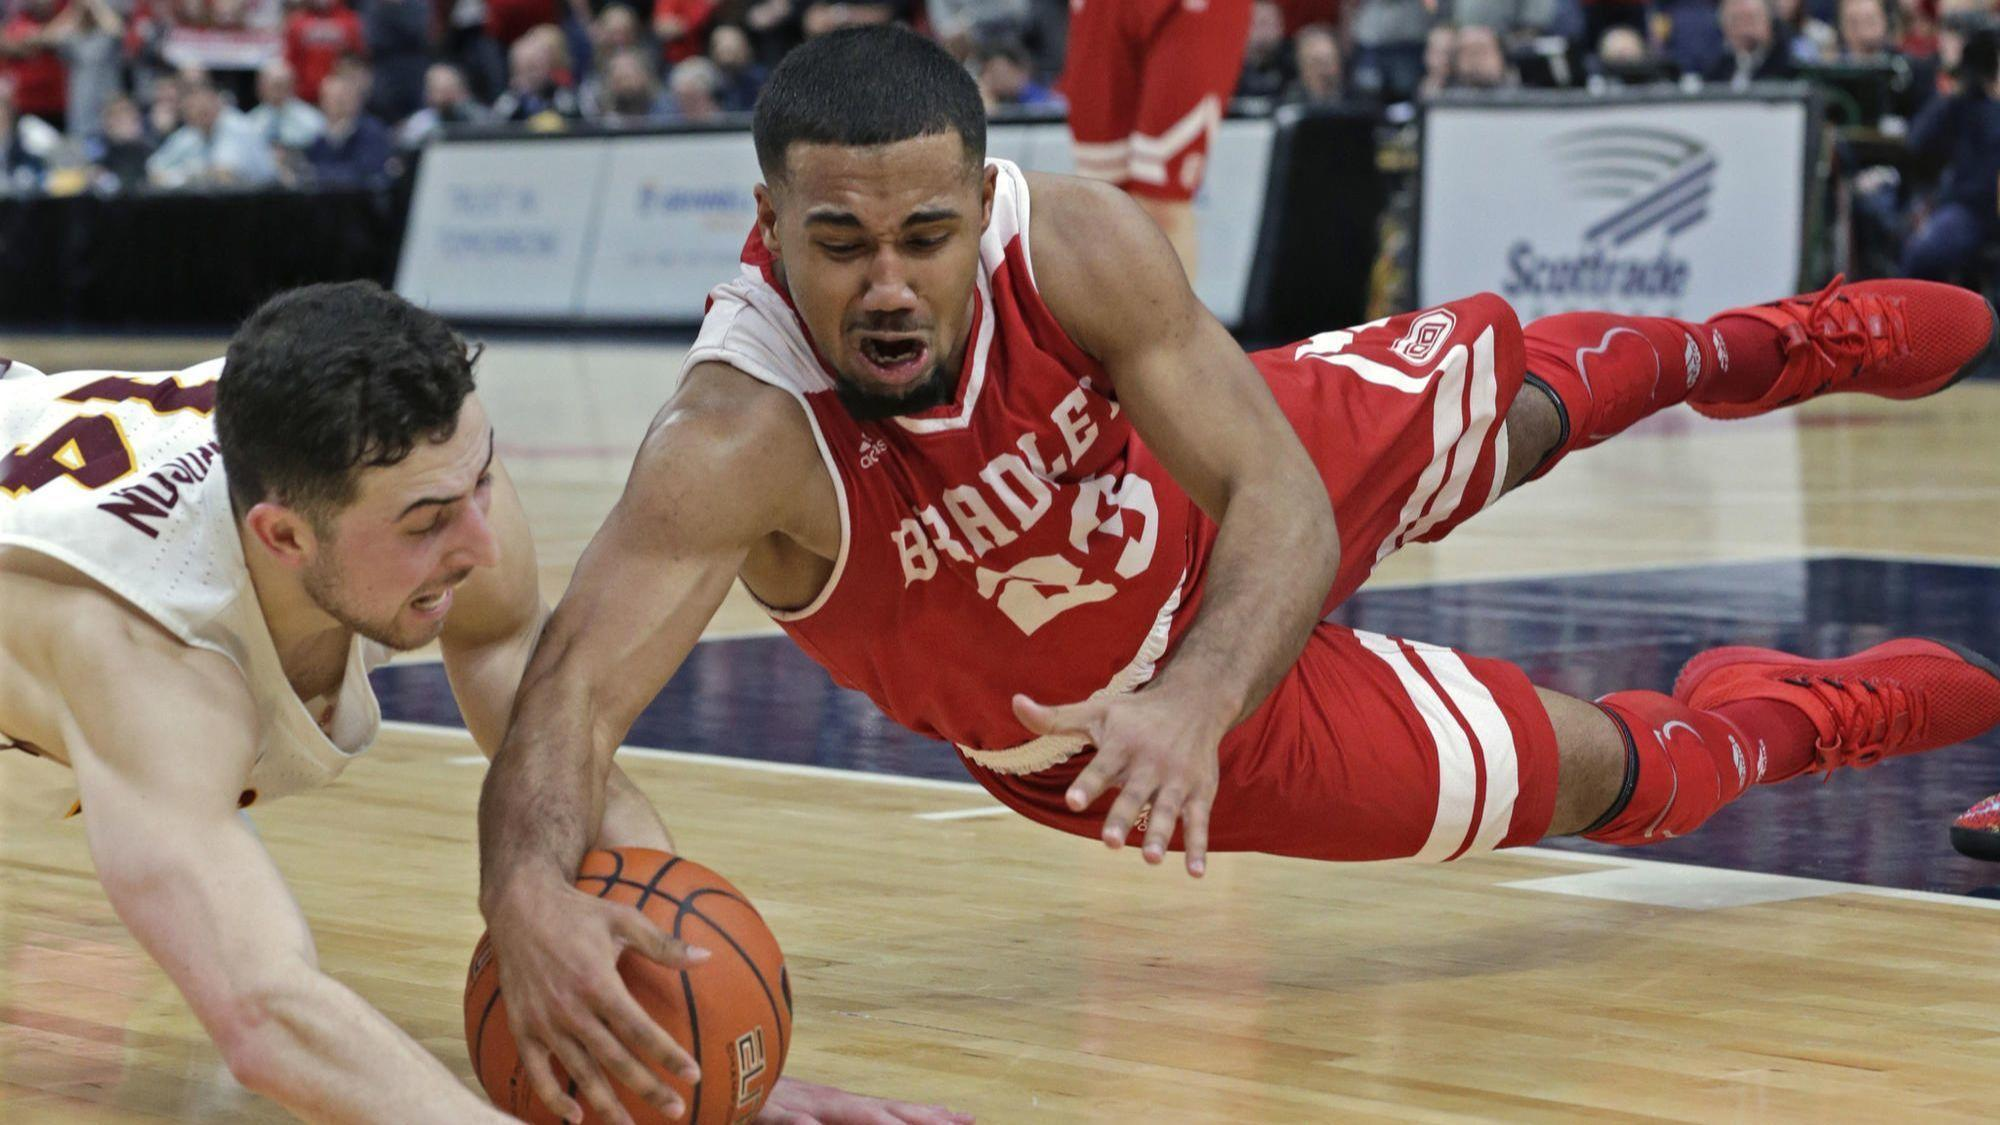 How did Bradley compile an NCAA Tournament team? 'Worldwide' recruiting with players from 6 foreign countries